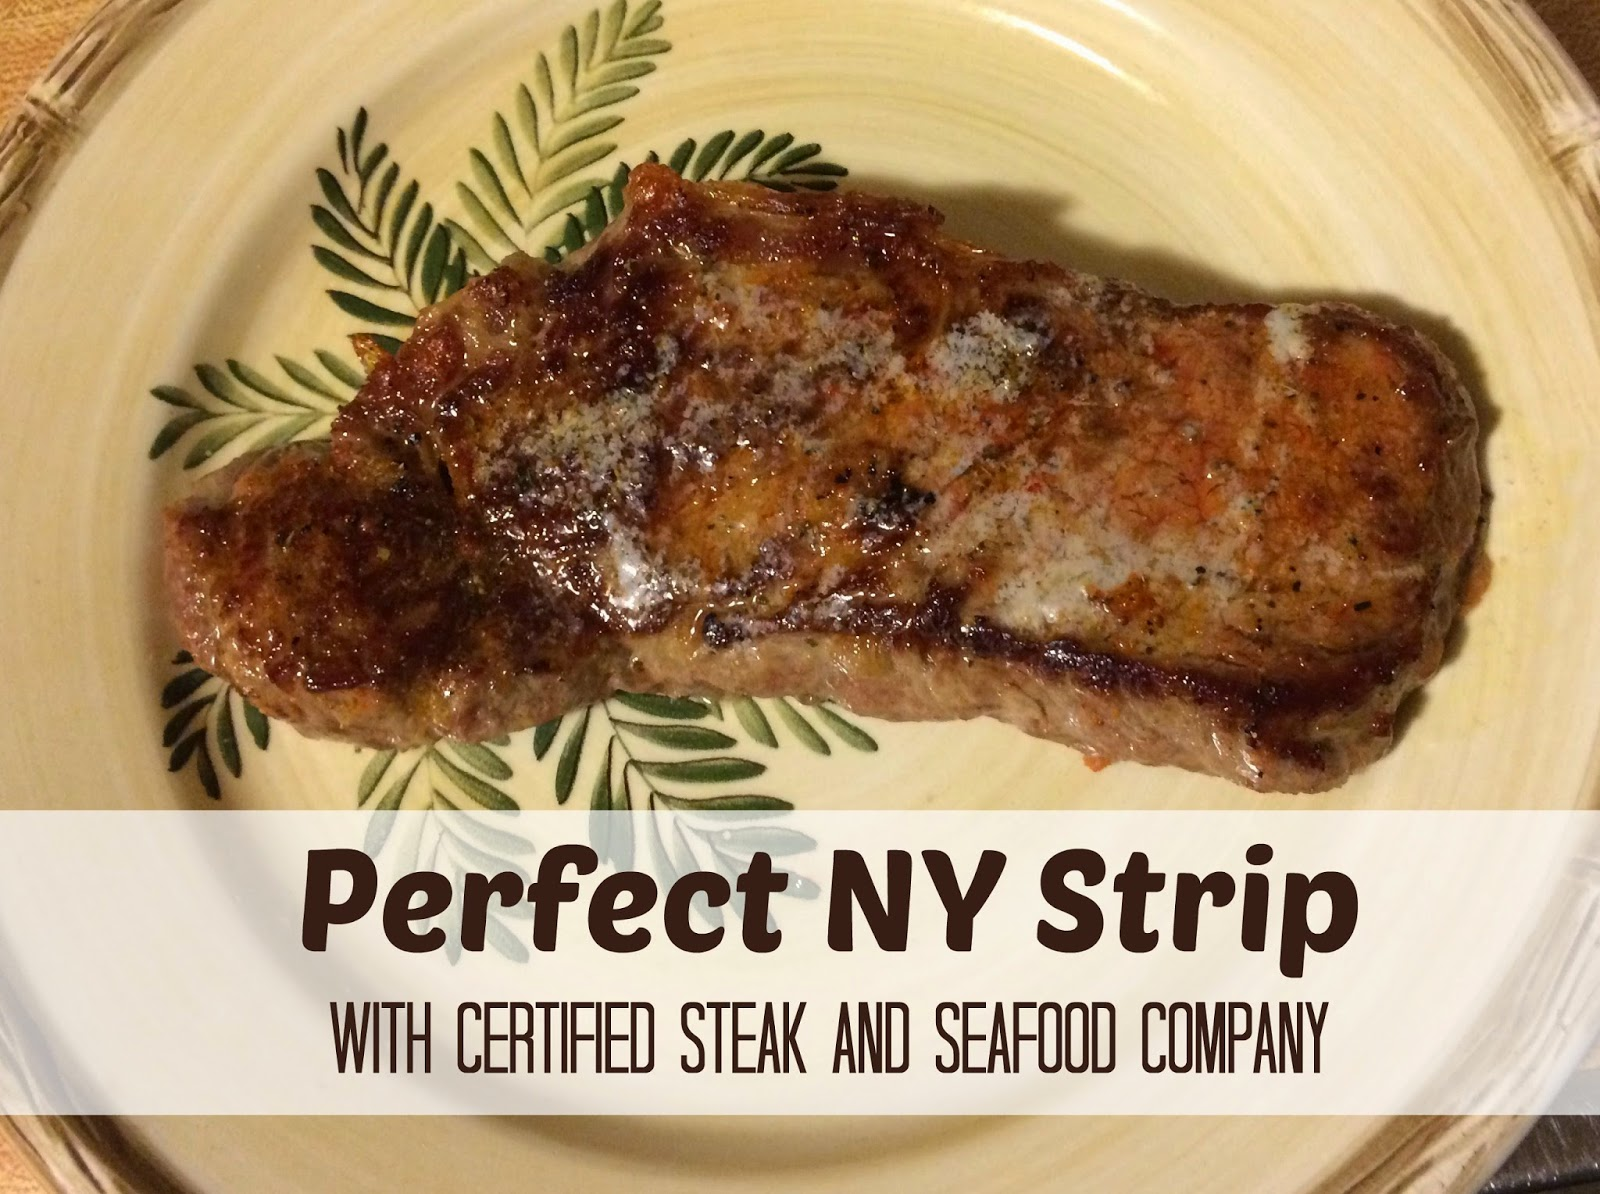 For Certified Steak & Seafood Company we currently have 5 coupons and 0 deals. Our users can save with our coupons on average about $ Todays best offer is 35% Off.